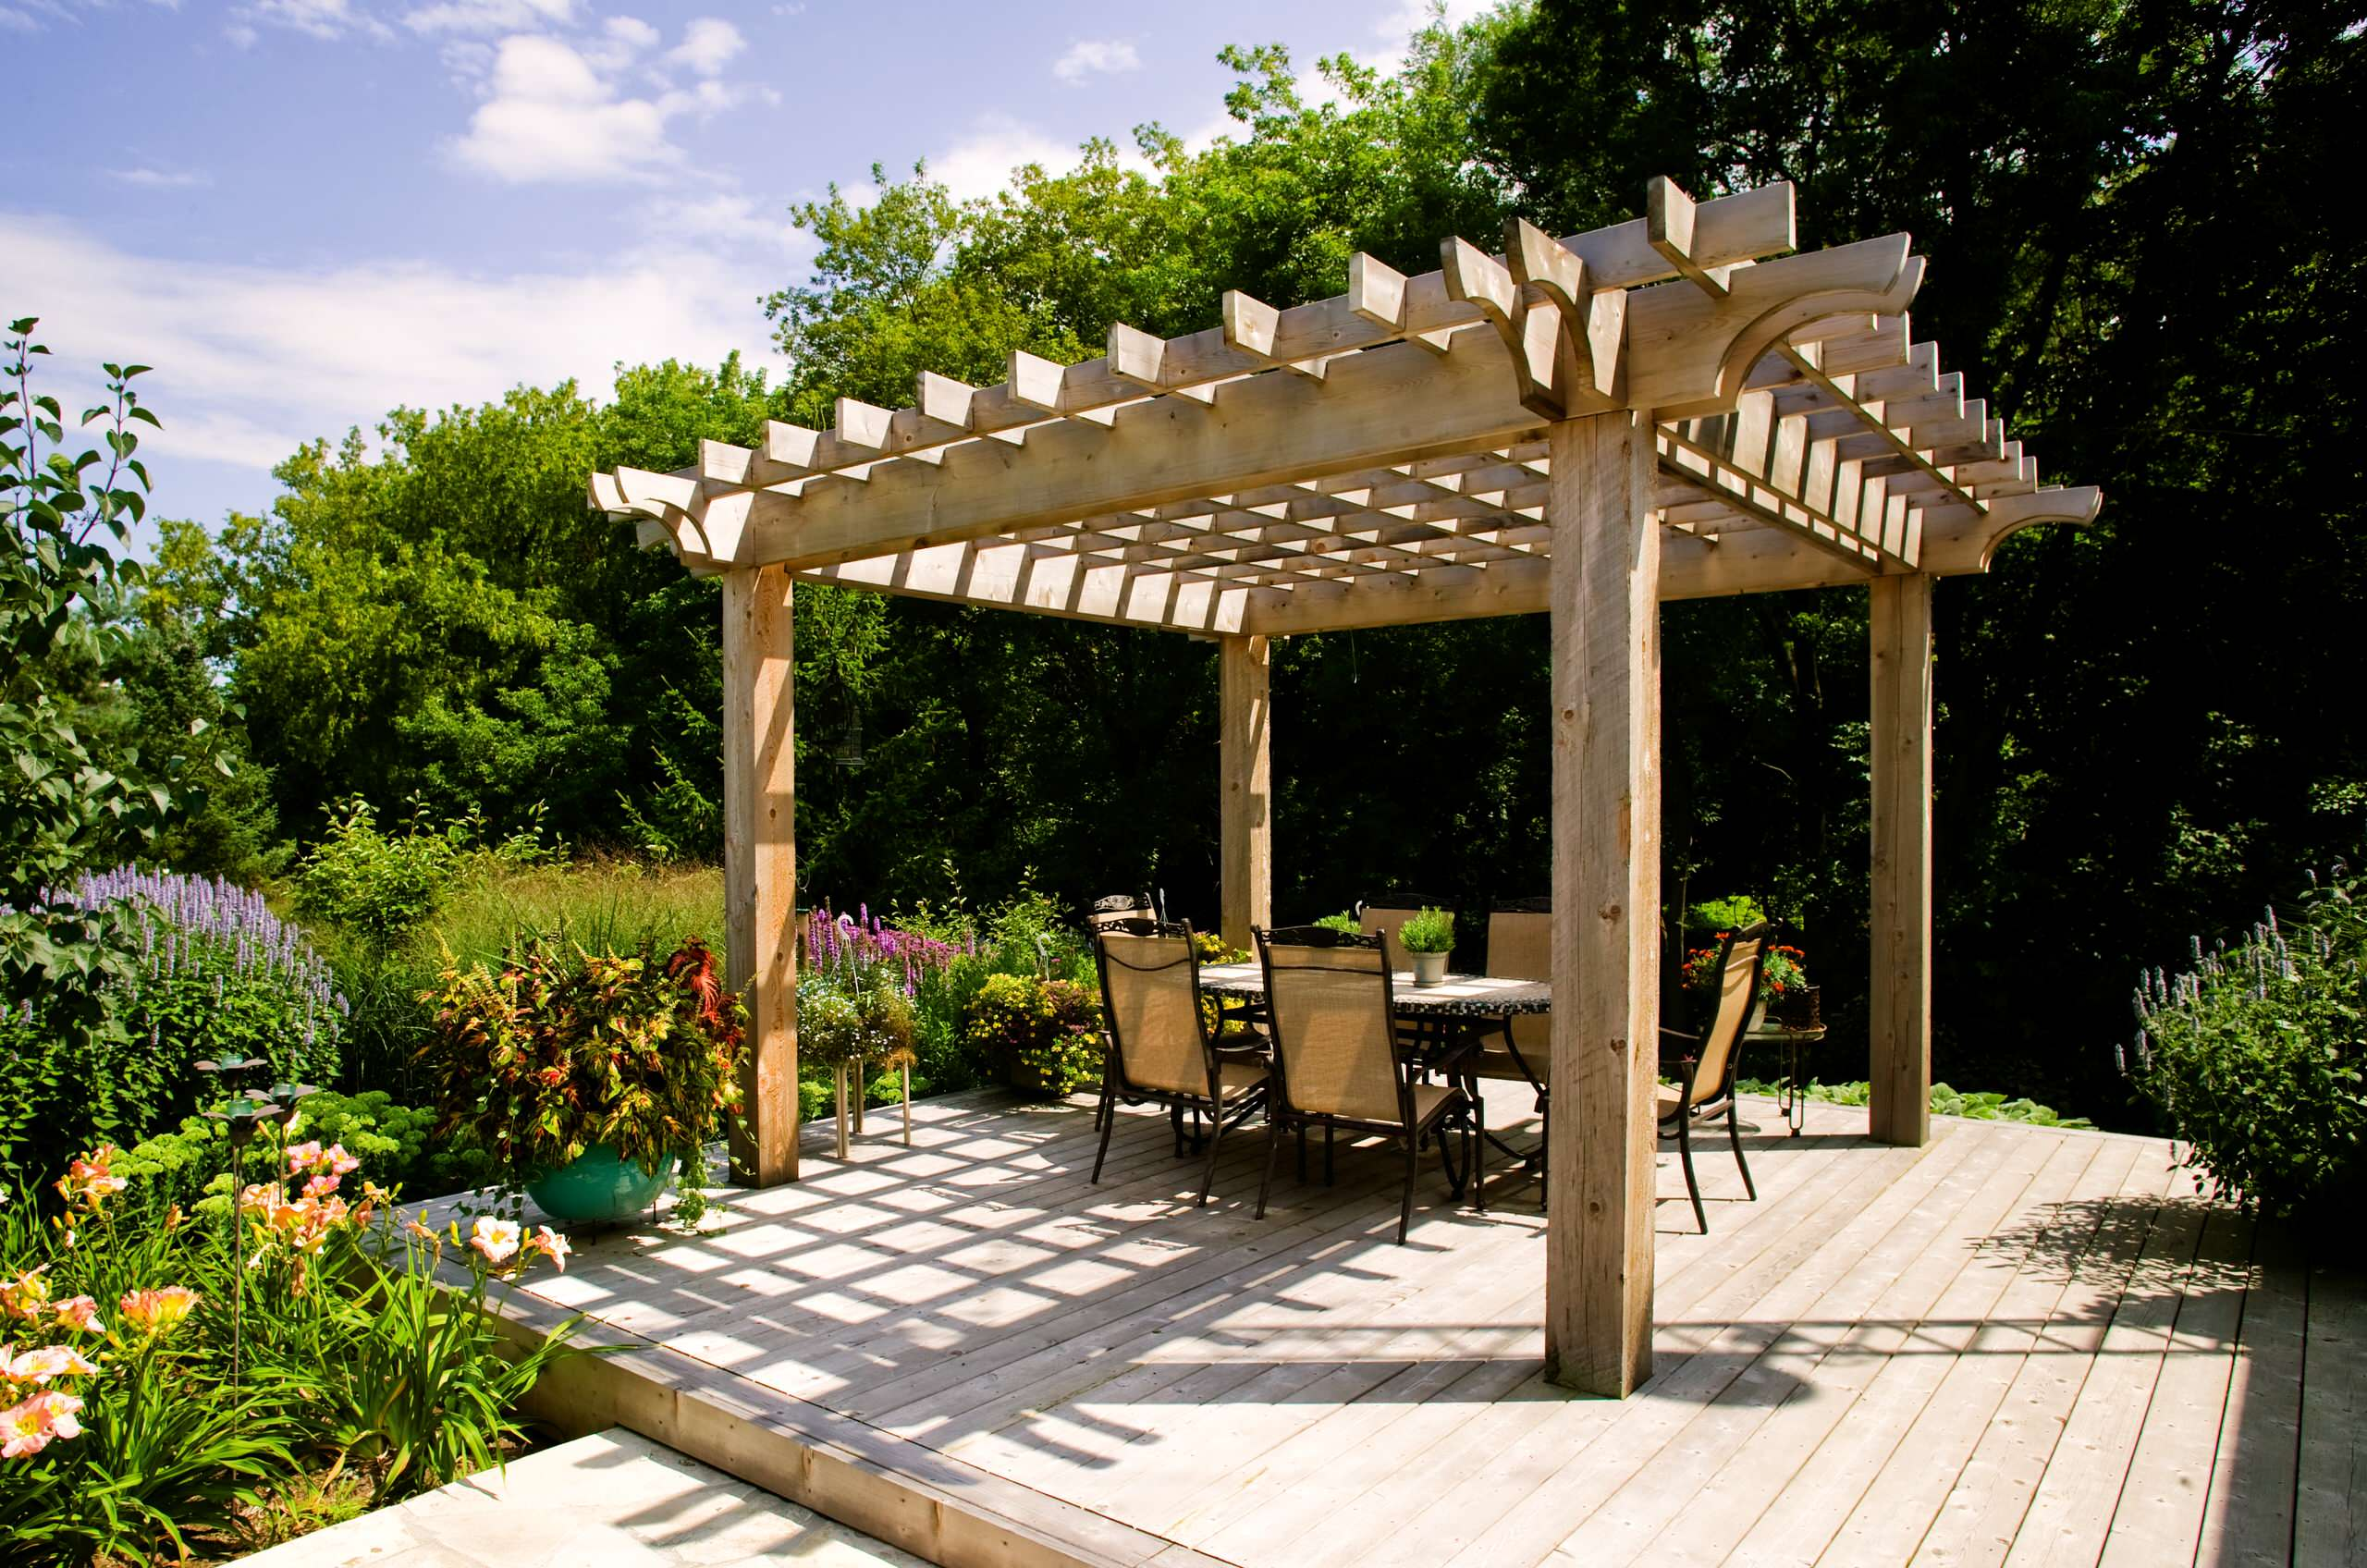 Inspiring Exterior House plus Pergola Ideas: Inspiring Arbour With Carpentry And Cedar Deck Plus Garden Ideas Also Patio Furniture With Outdoor Dining And Perennial Garden For Pergola Ideas With Softscaping In Backyard